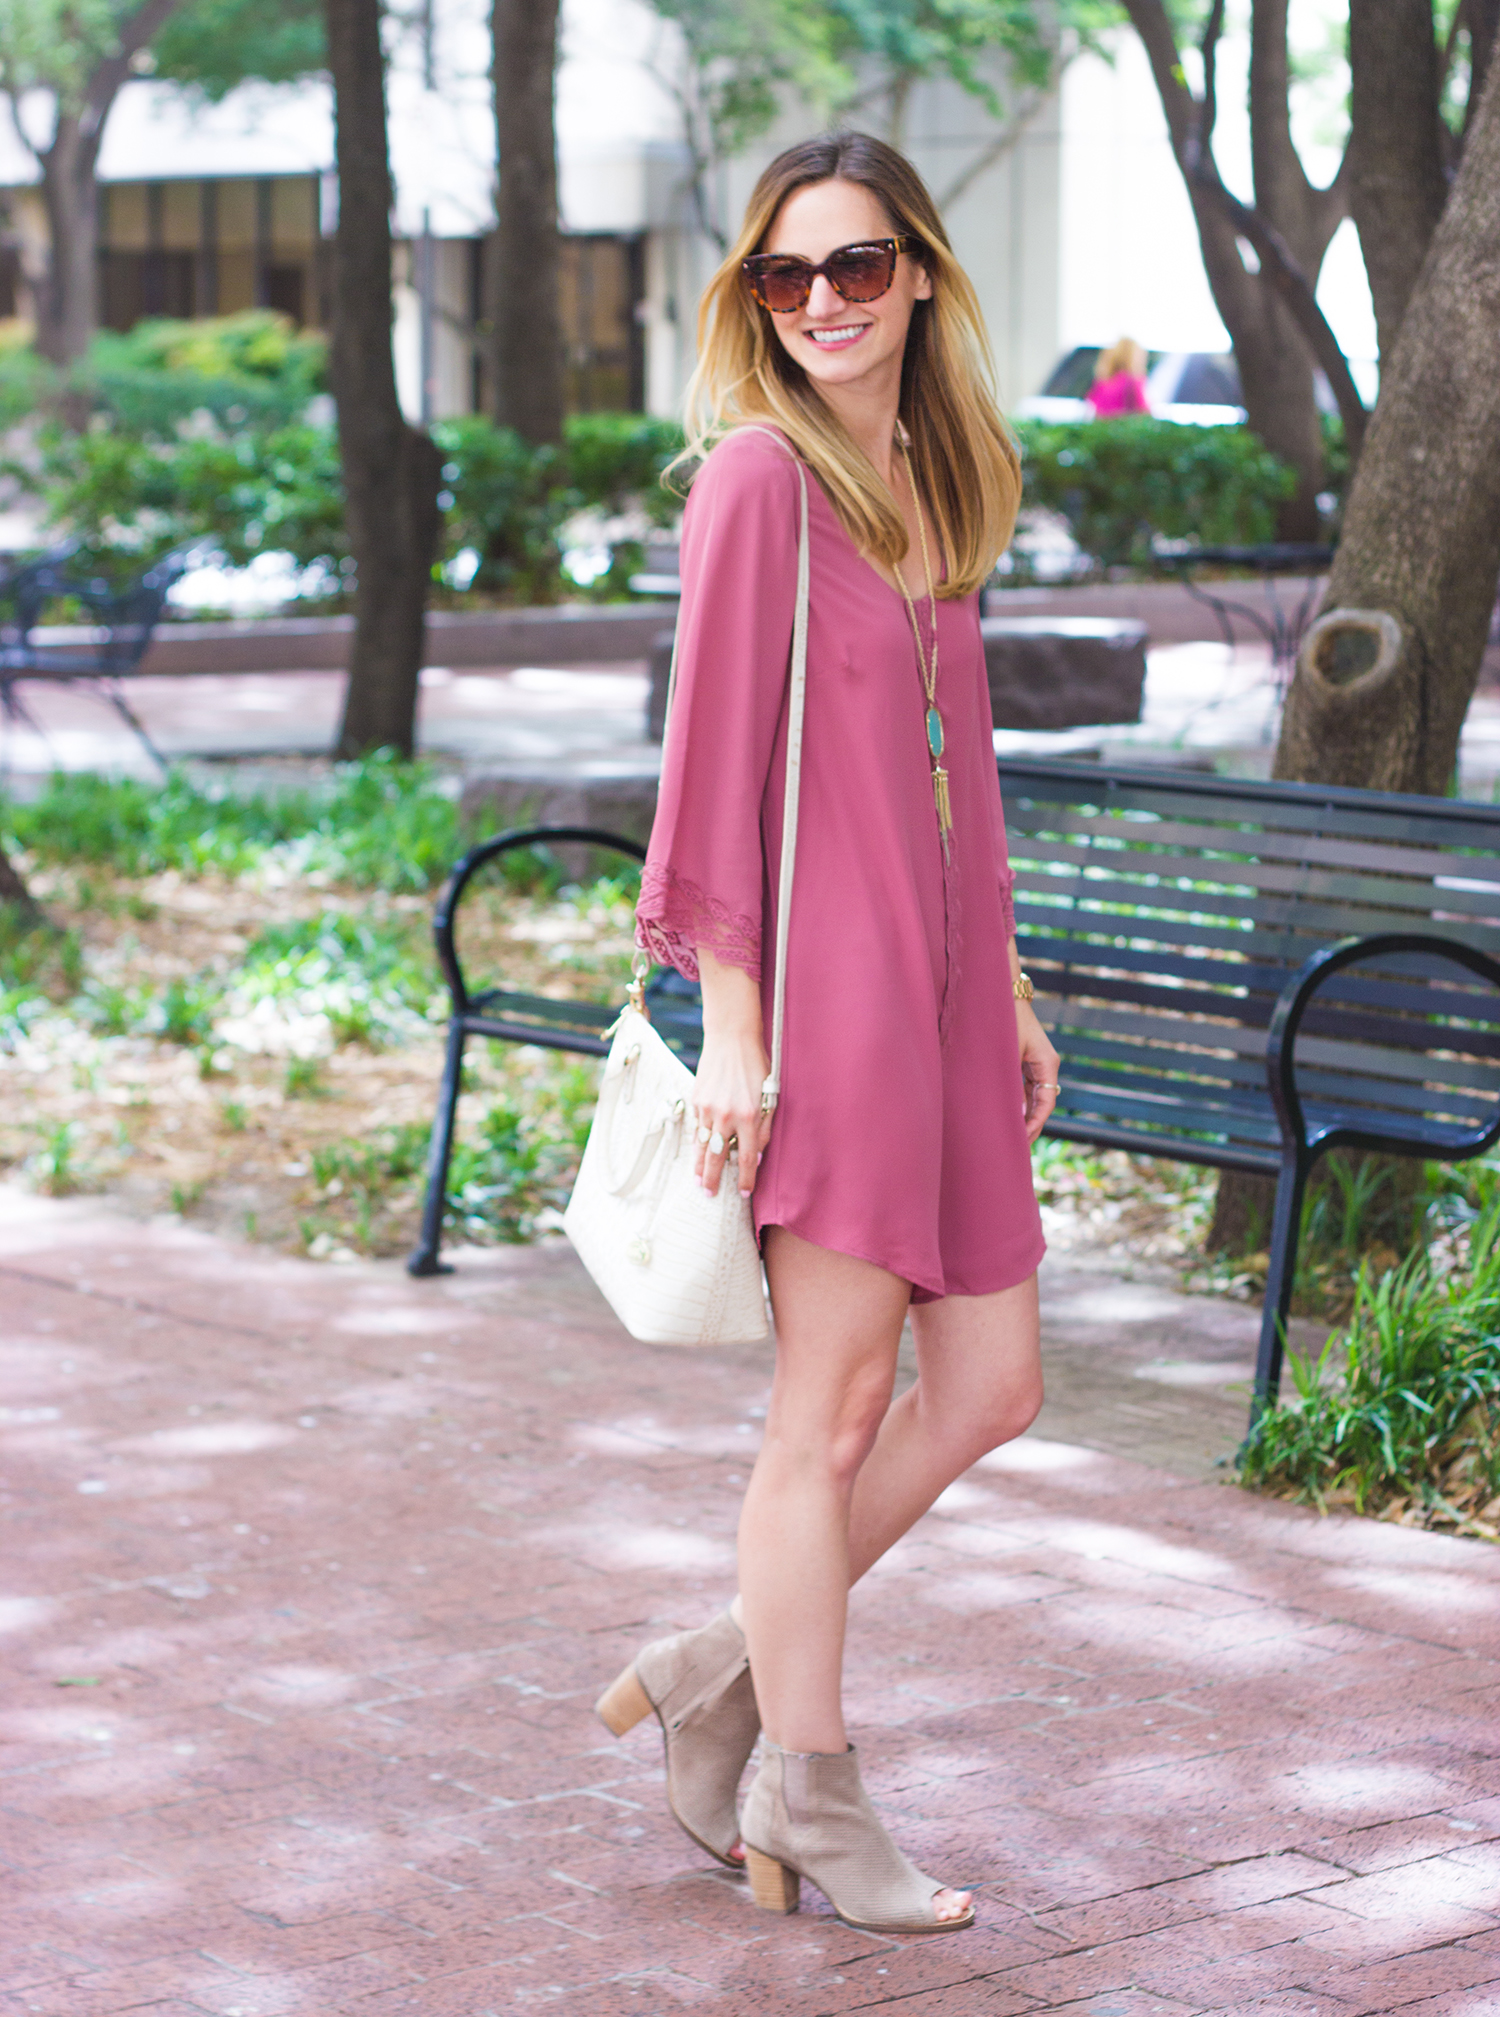 livvyland-blog-olivia-watson-dallas-texas-austin-fashion-blogger-the-joule-magnolia-hotel-park-mauve-lace-dress-dusty-rose-brahmin-duxbury-cava-handbag-prada-cateye-sunglasses-spring-outfit-7